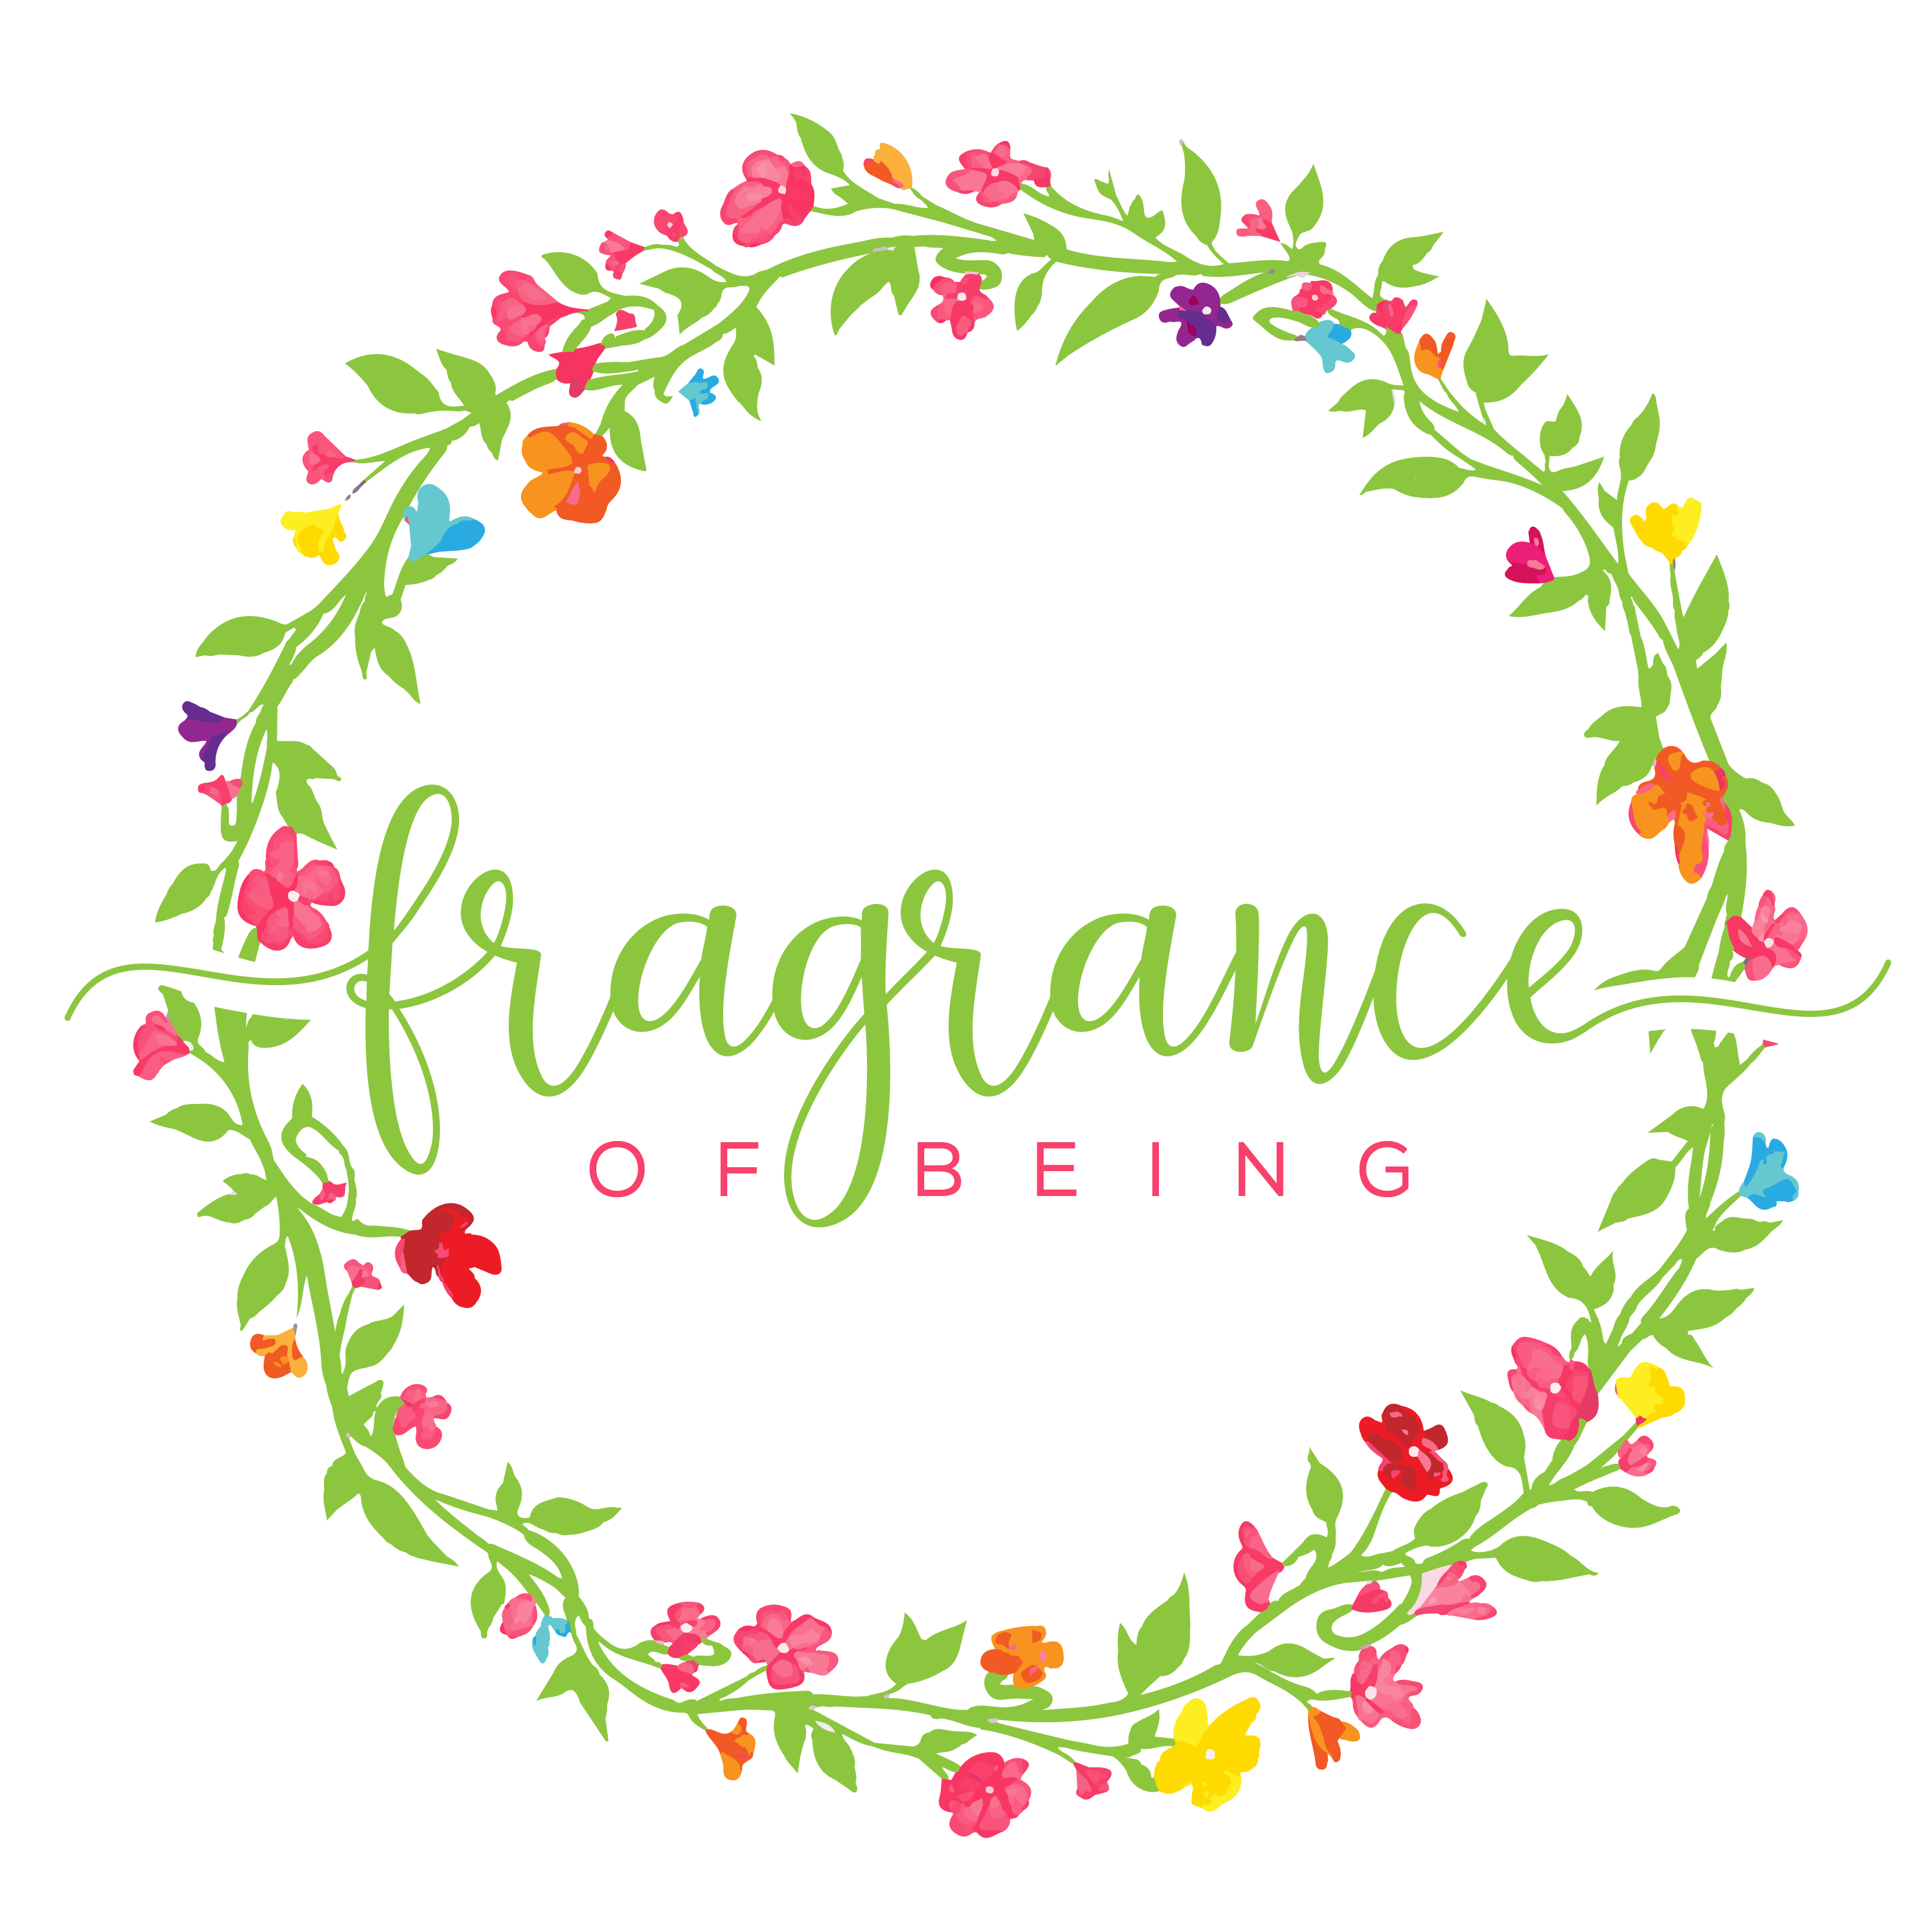 Fragrance of Being